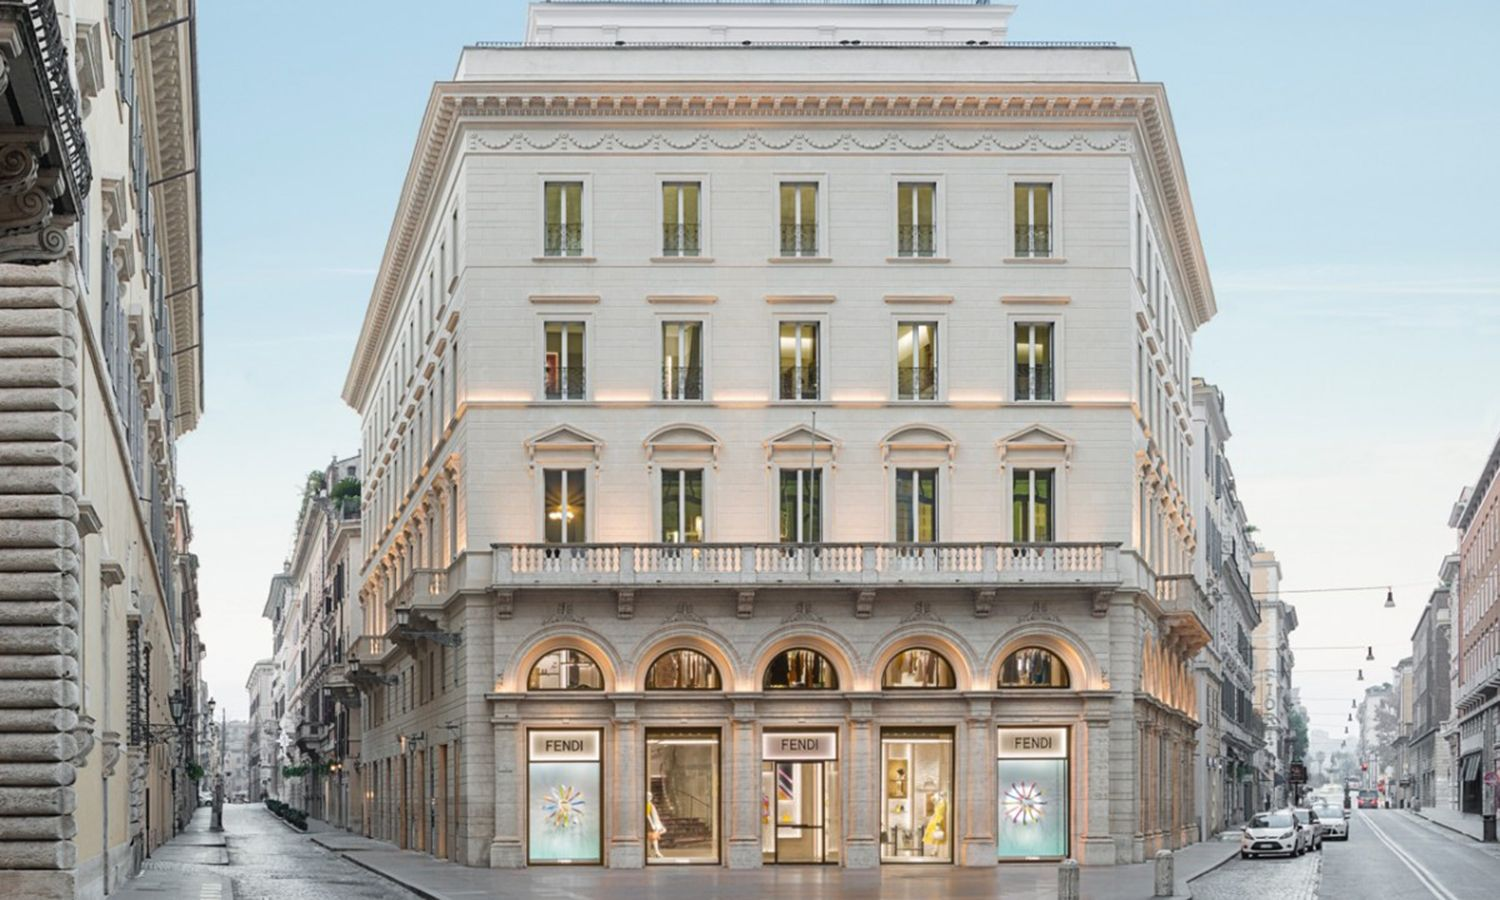 An Insider's Look at the Recently Revamped Palazzo Fendi